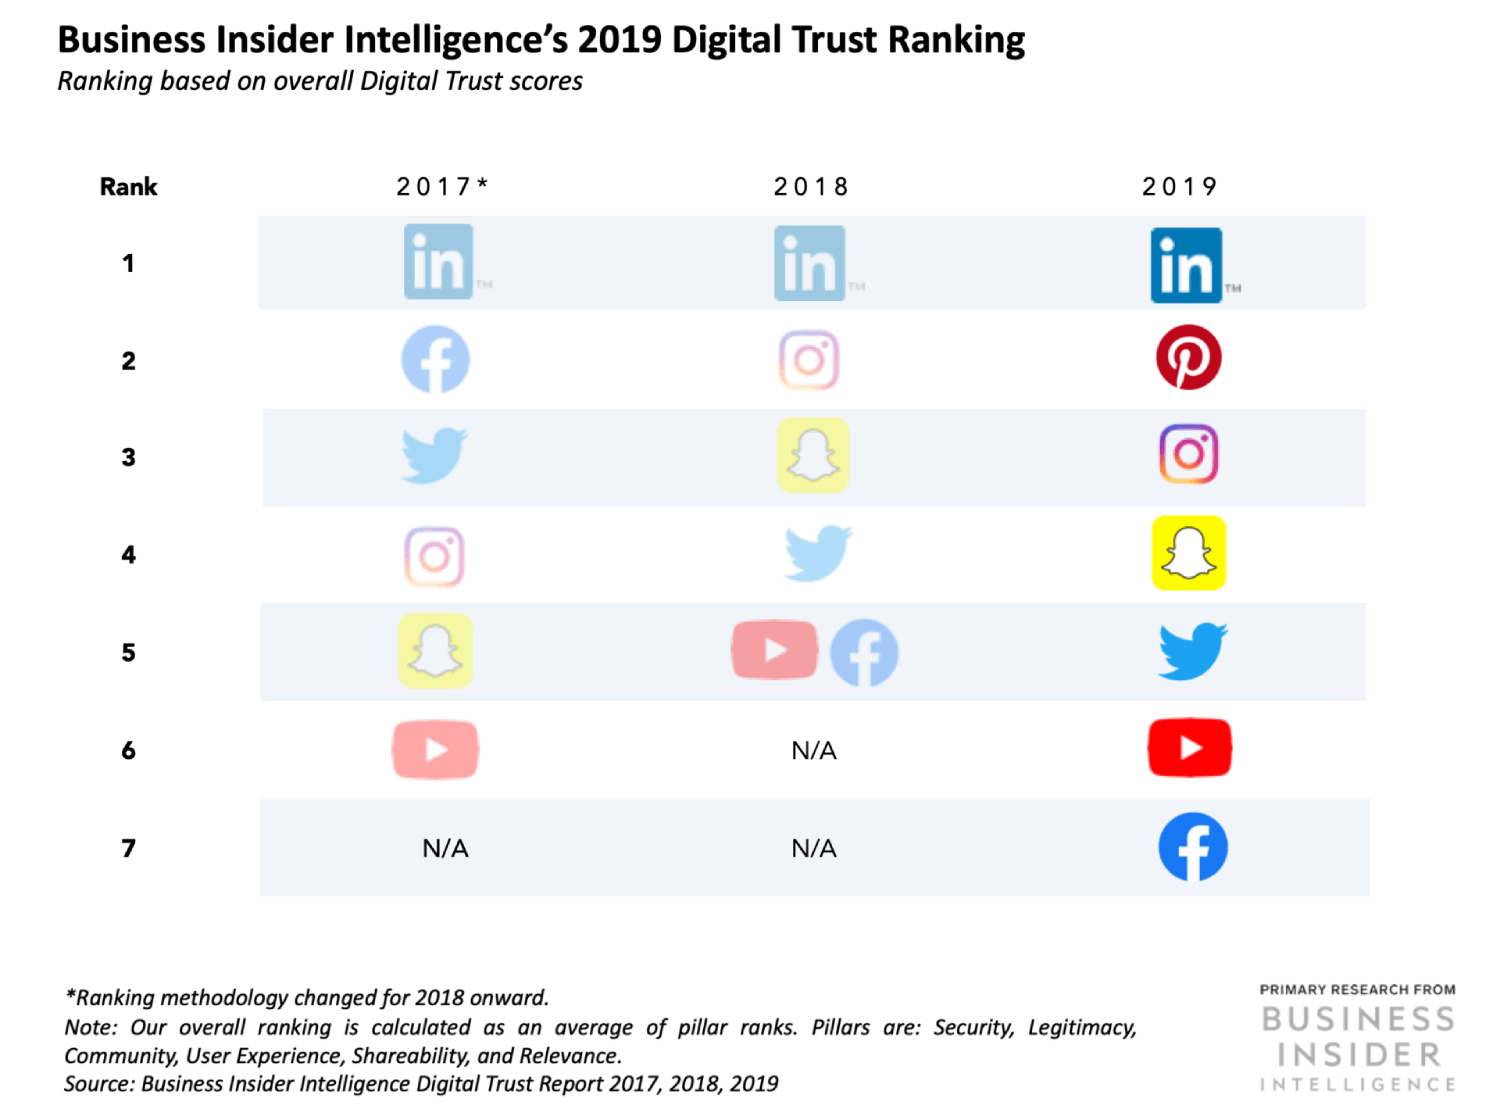 LinkedIn ranks First for the third time in the annual Digital Trust report